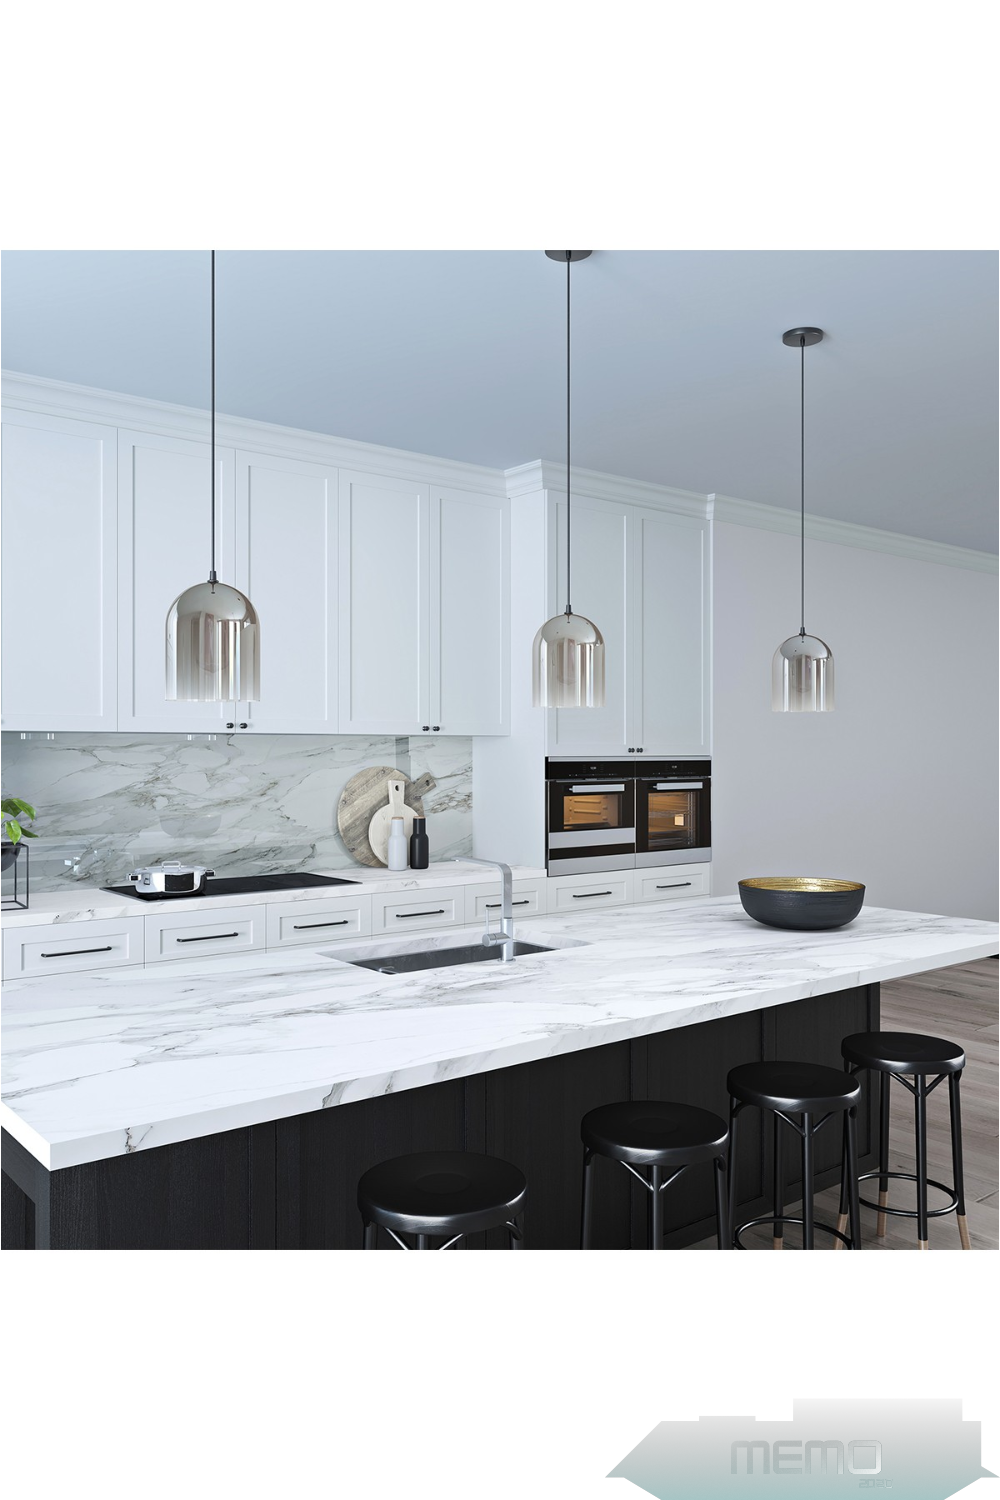 Jun 8 2020 This Pin Was Discovered By Michelle Rodriguez Discover And Save Your Own Pins In 2020 Contemporary Kitchen White Modern Kitchen Modern Kitchen Design